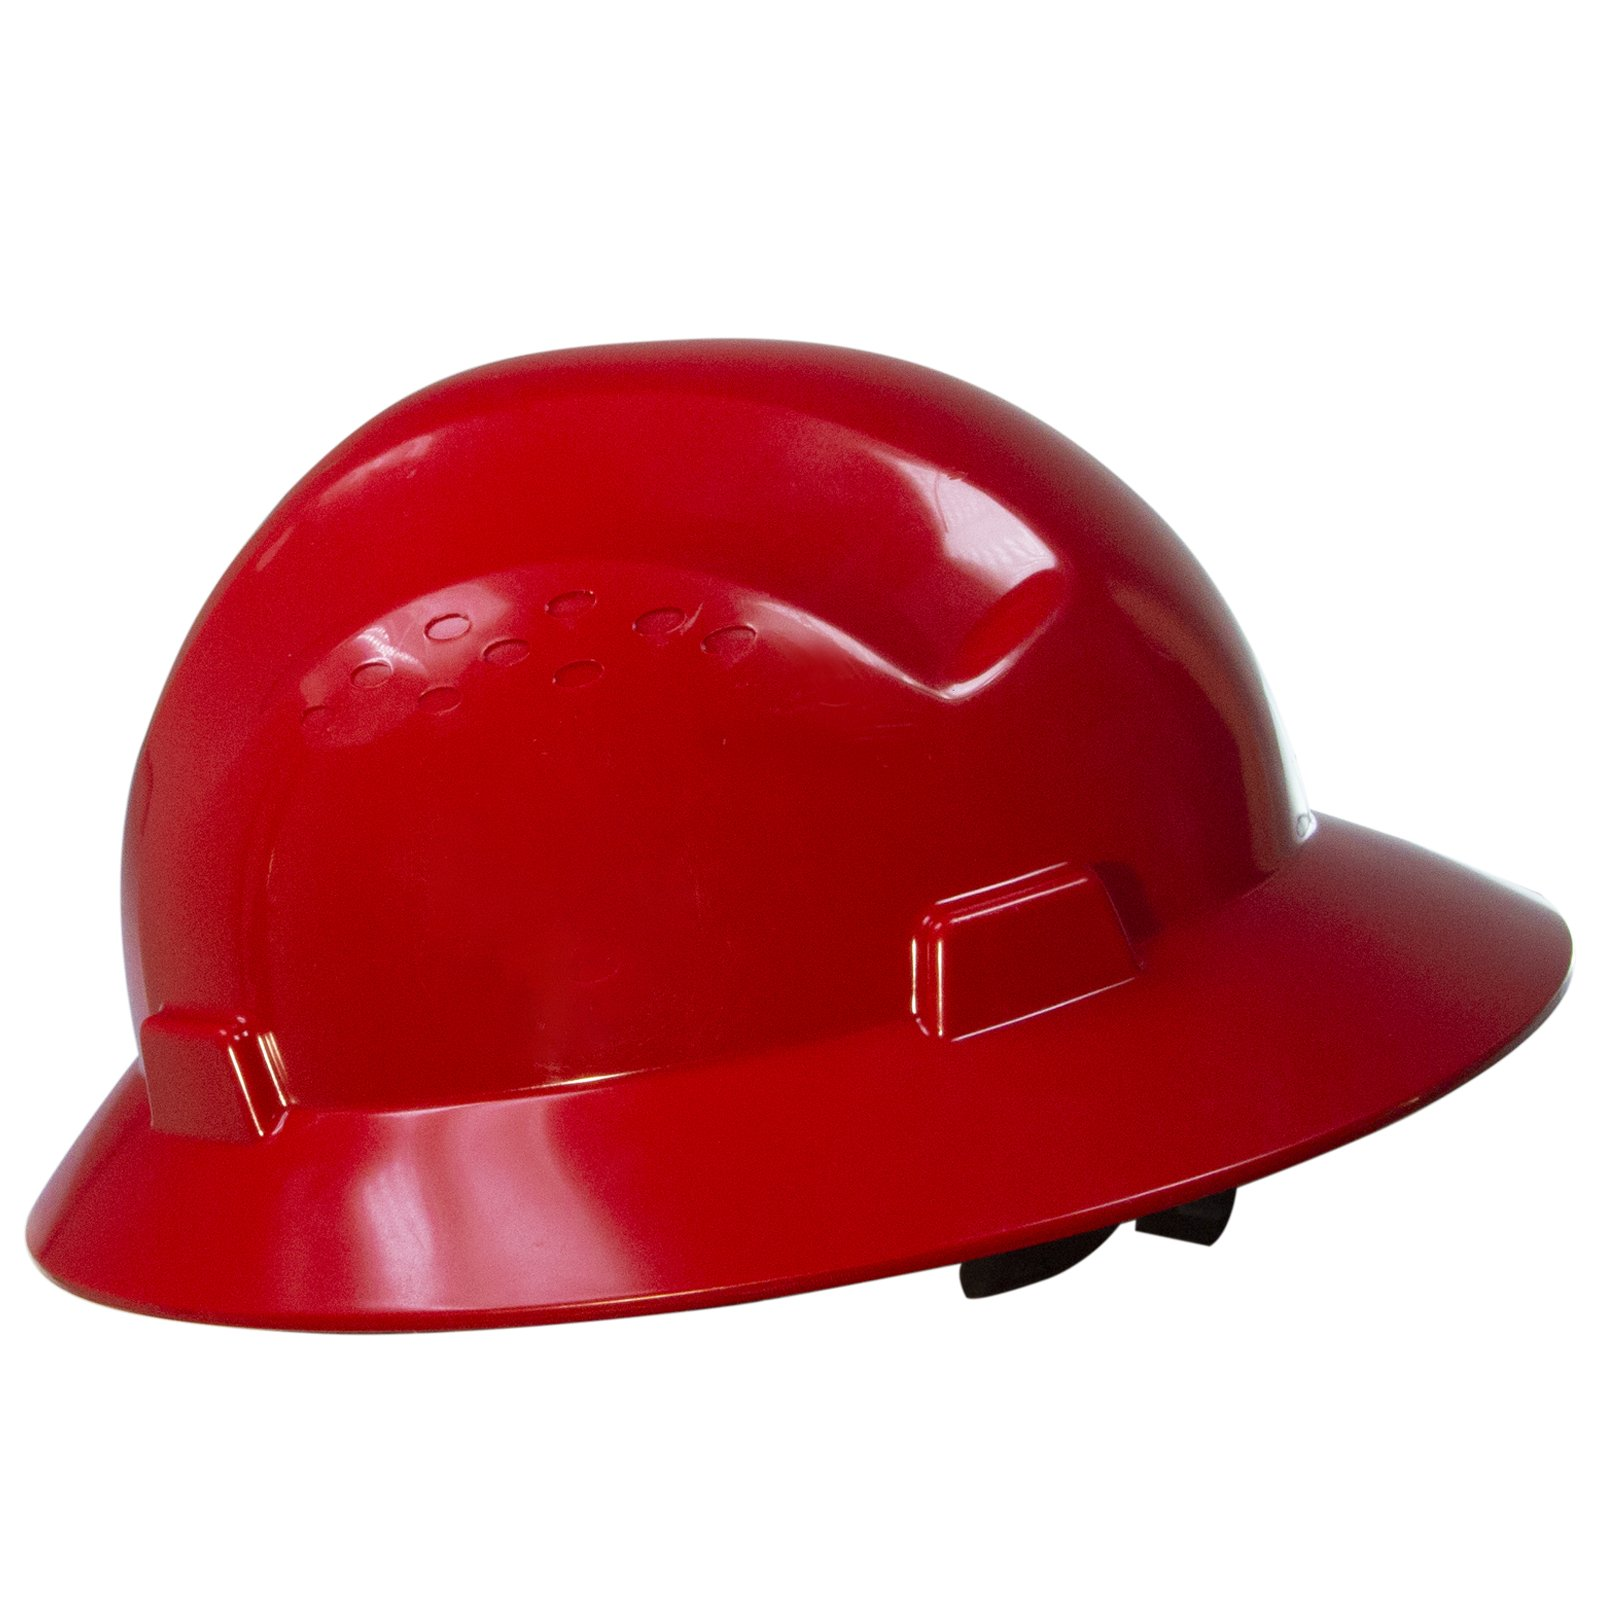 PPE By JORESTECH - HDPE Full Brim Style Hard Hat Helmet w/Adjustable Ratchet Suspension For Work, Home, and General Headwear Protection ANSI Z89.1-14 Compliant (Red) by JORESTECH (Image #3)